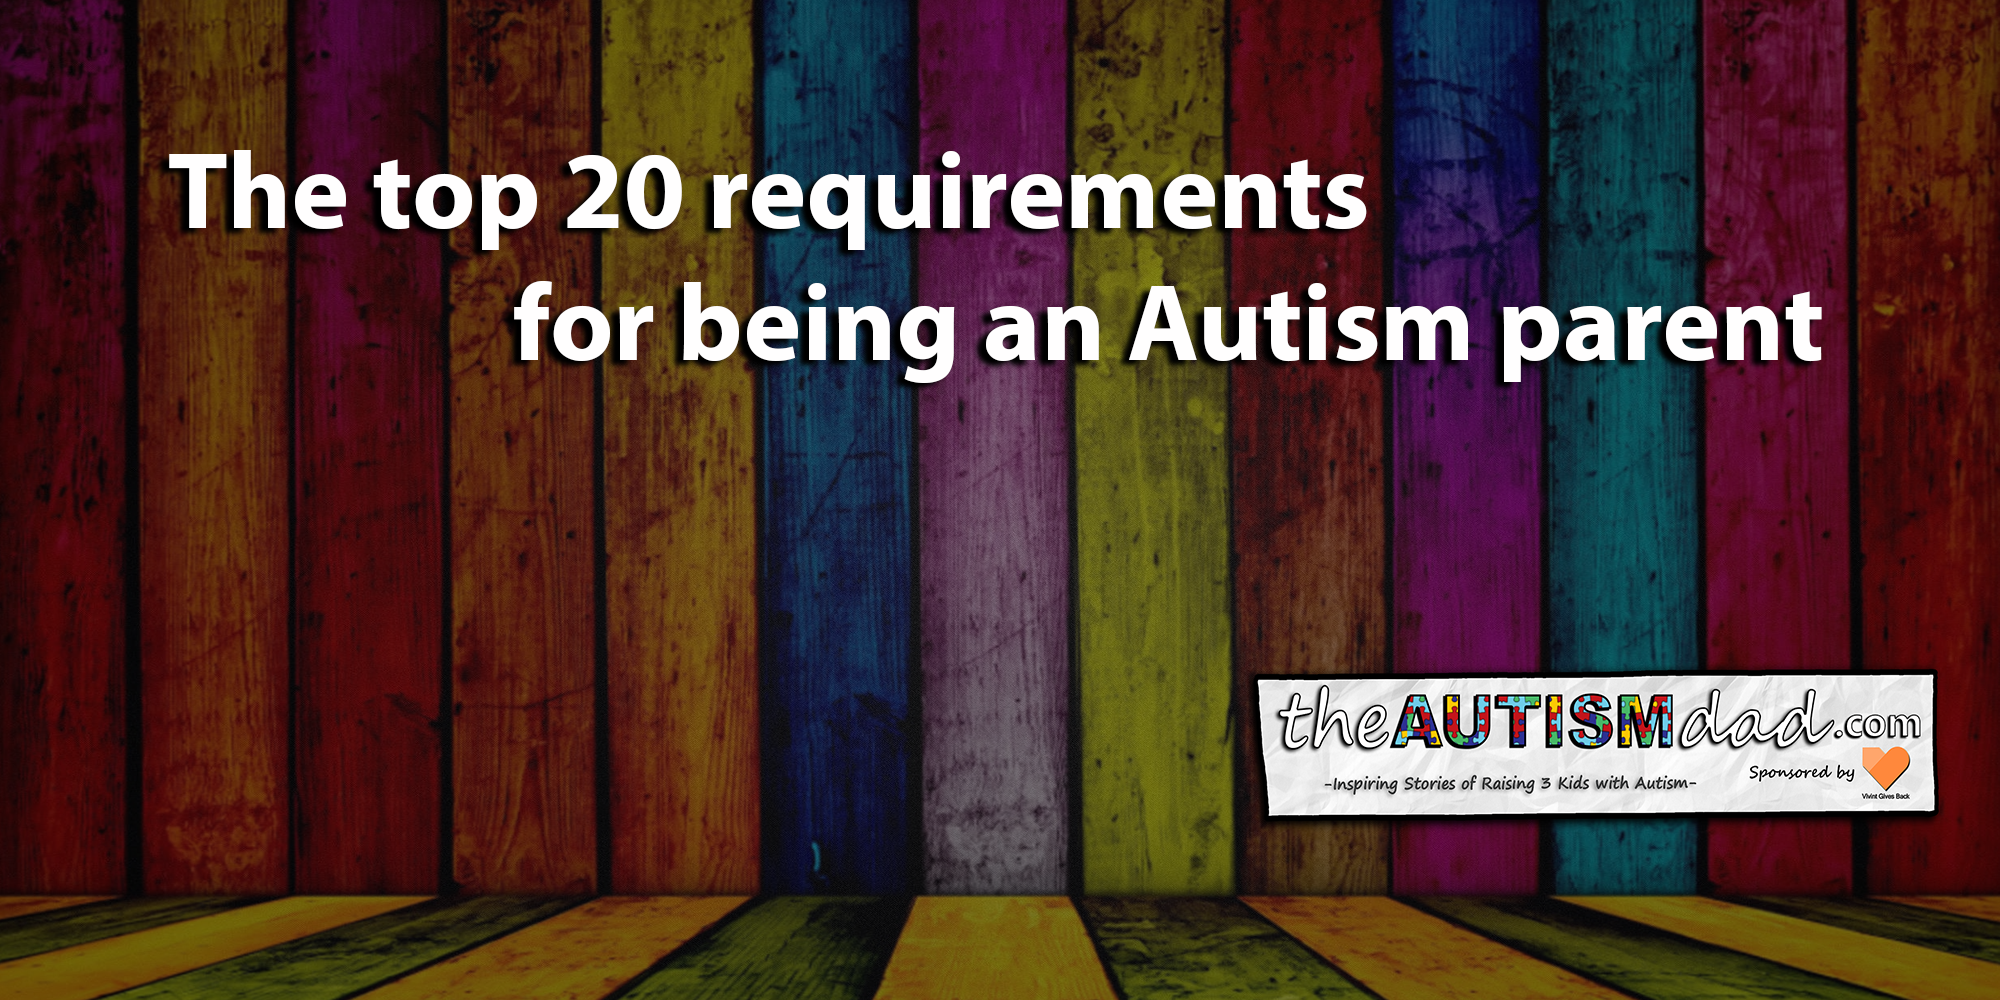 The top 20 requirements for being an #Autism parent